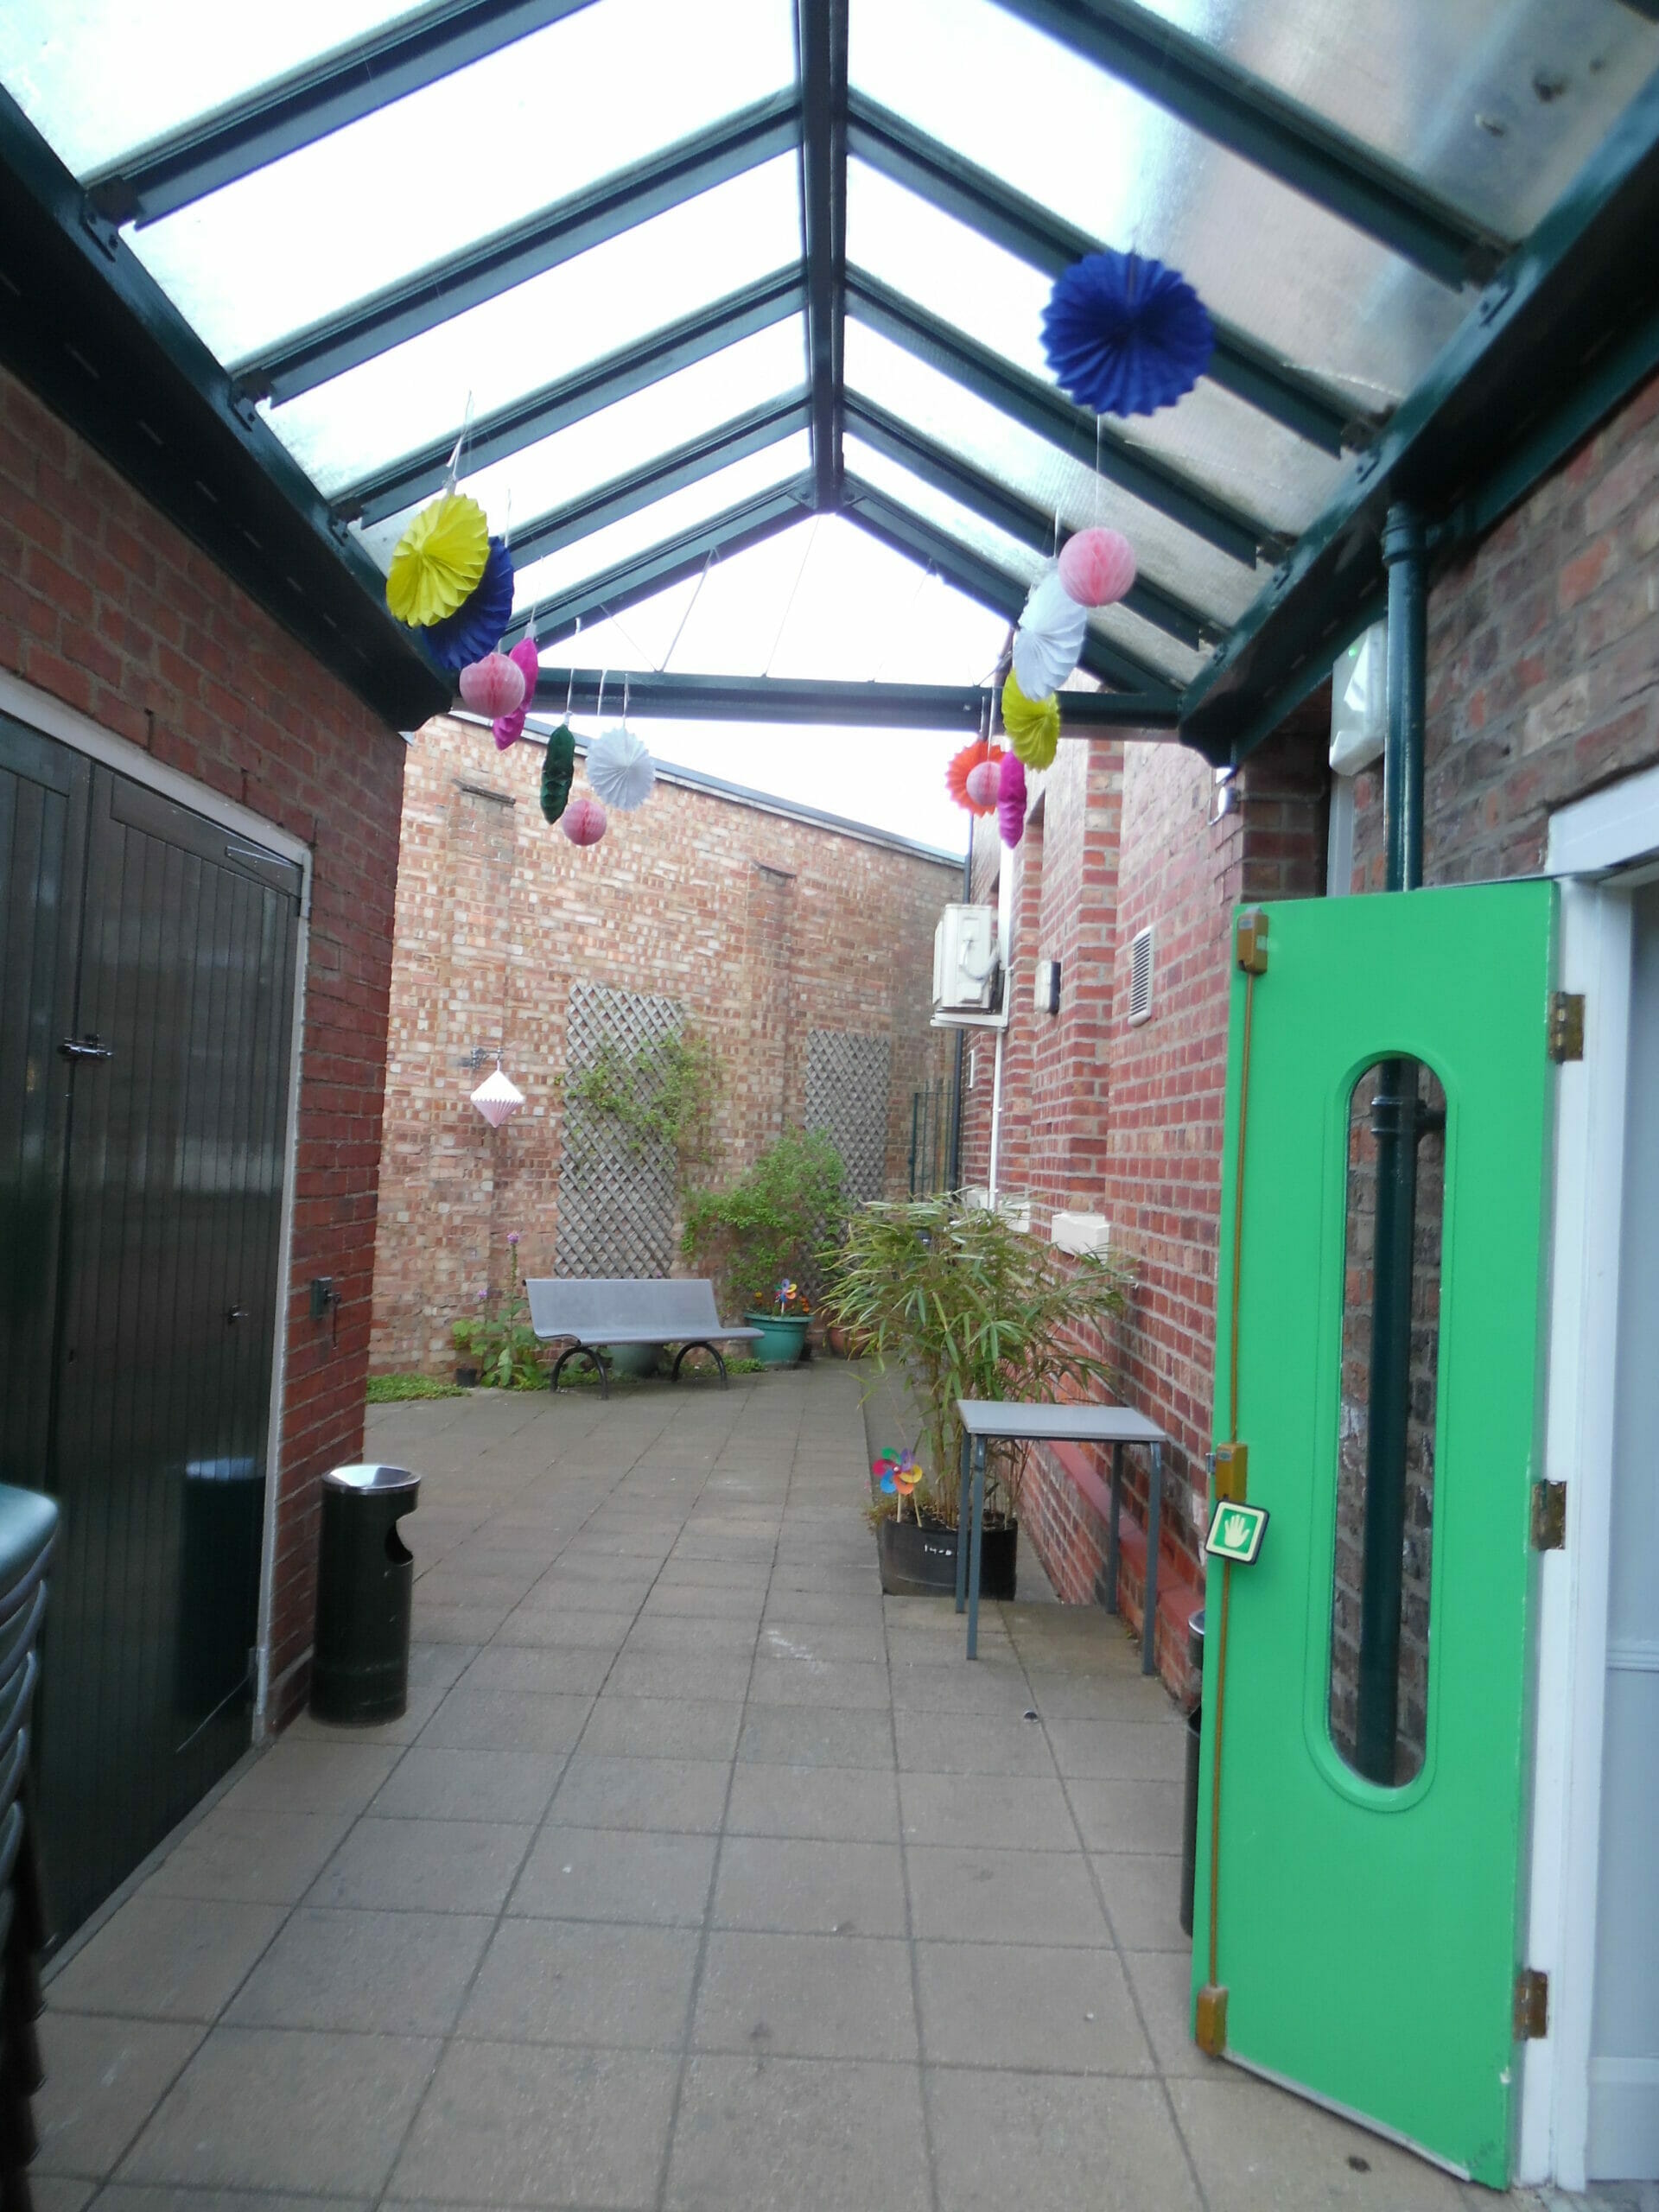 Photo shows outside courtyard